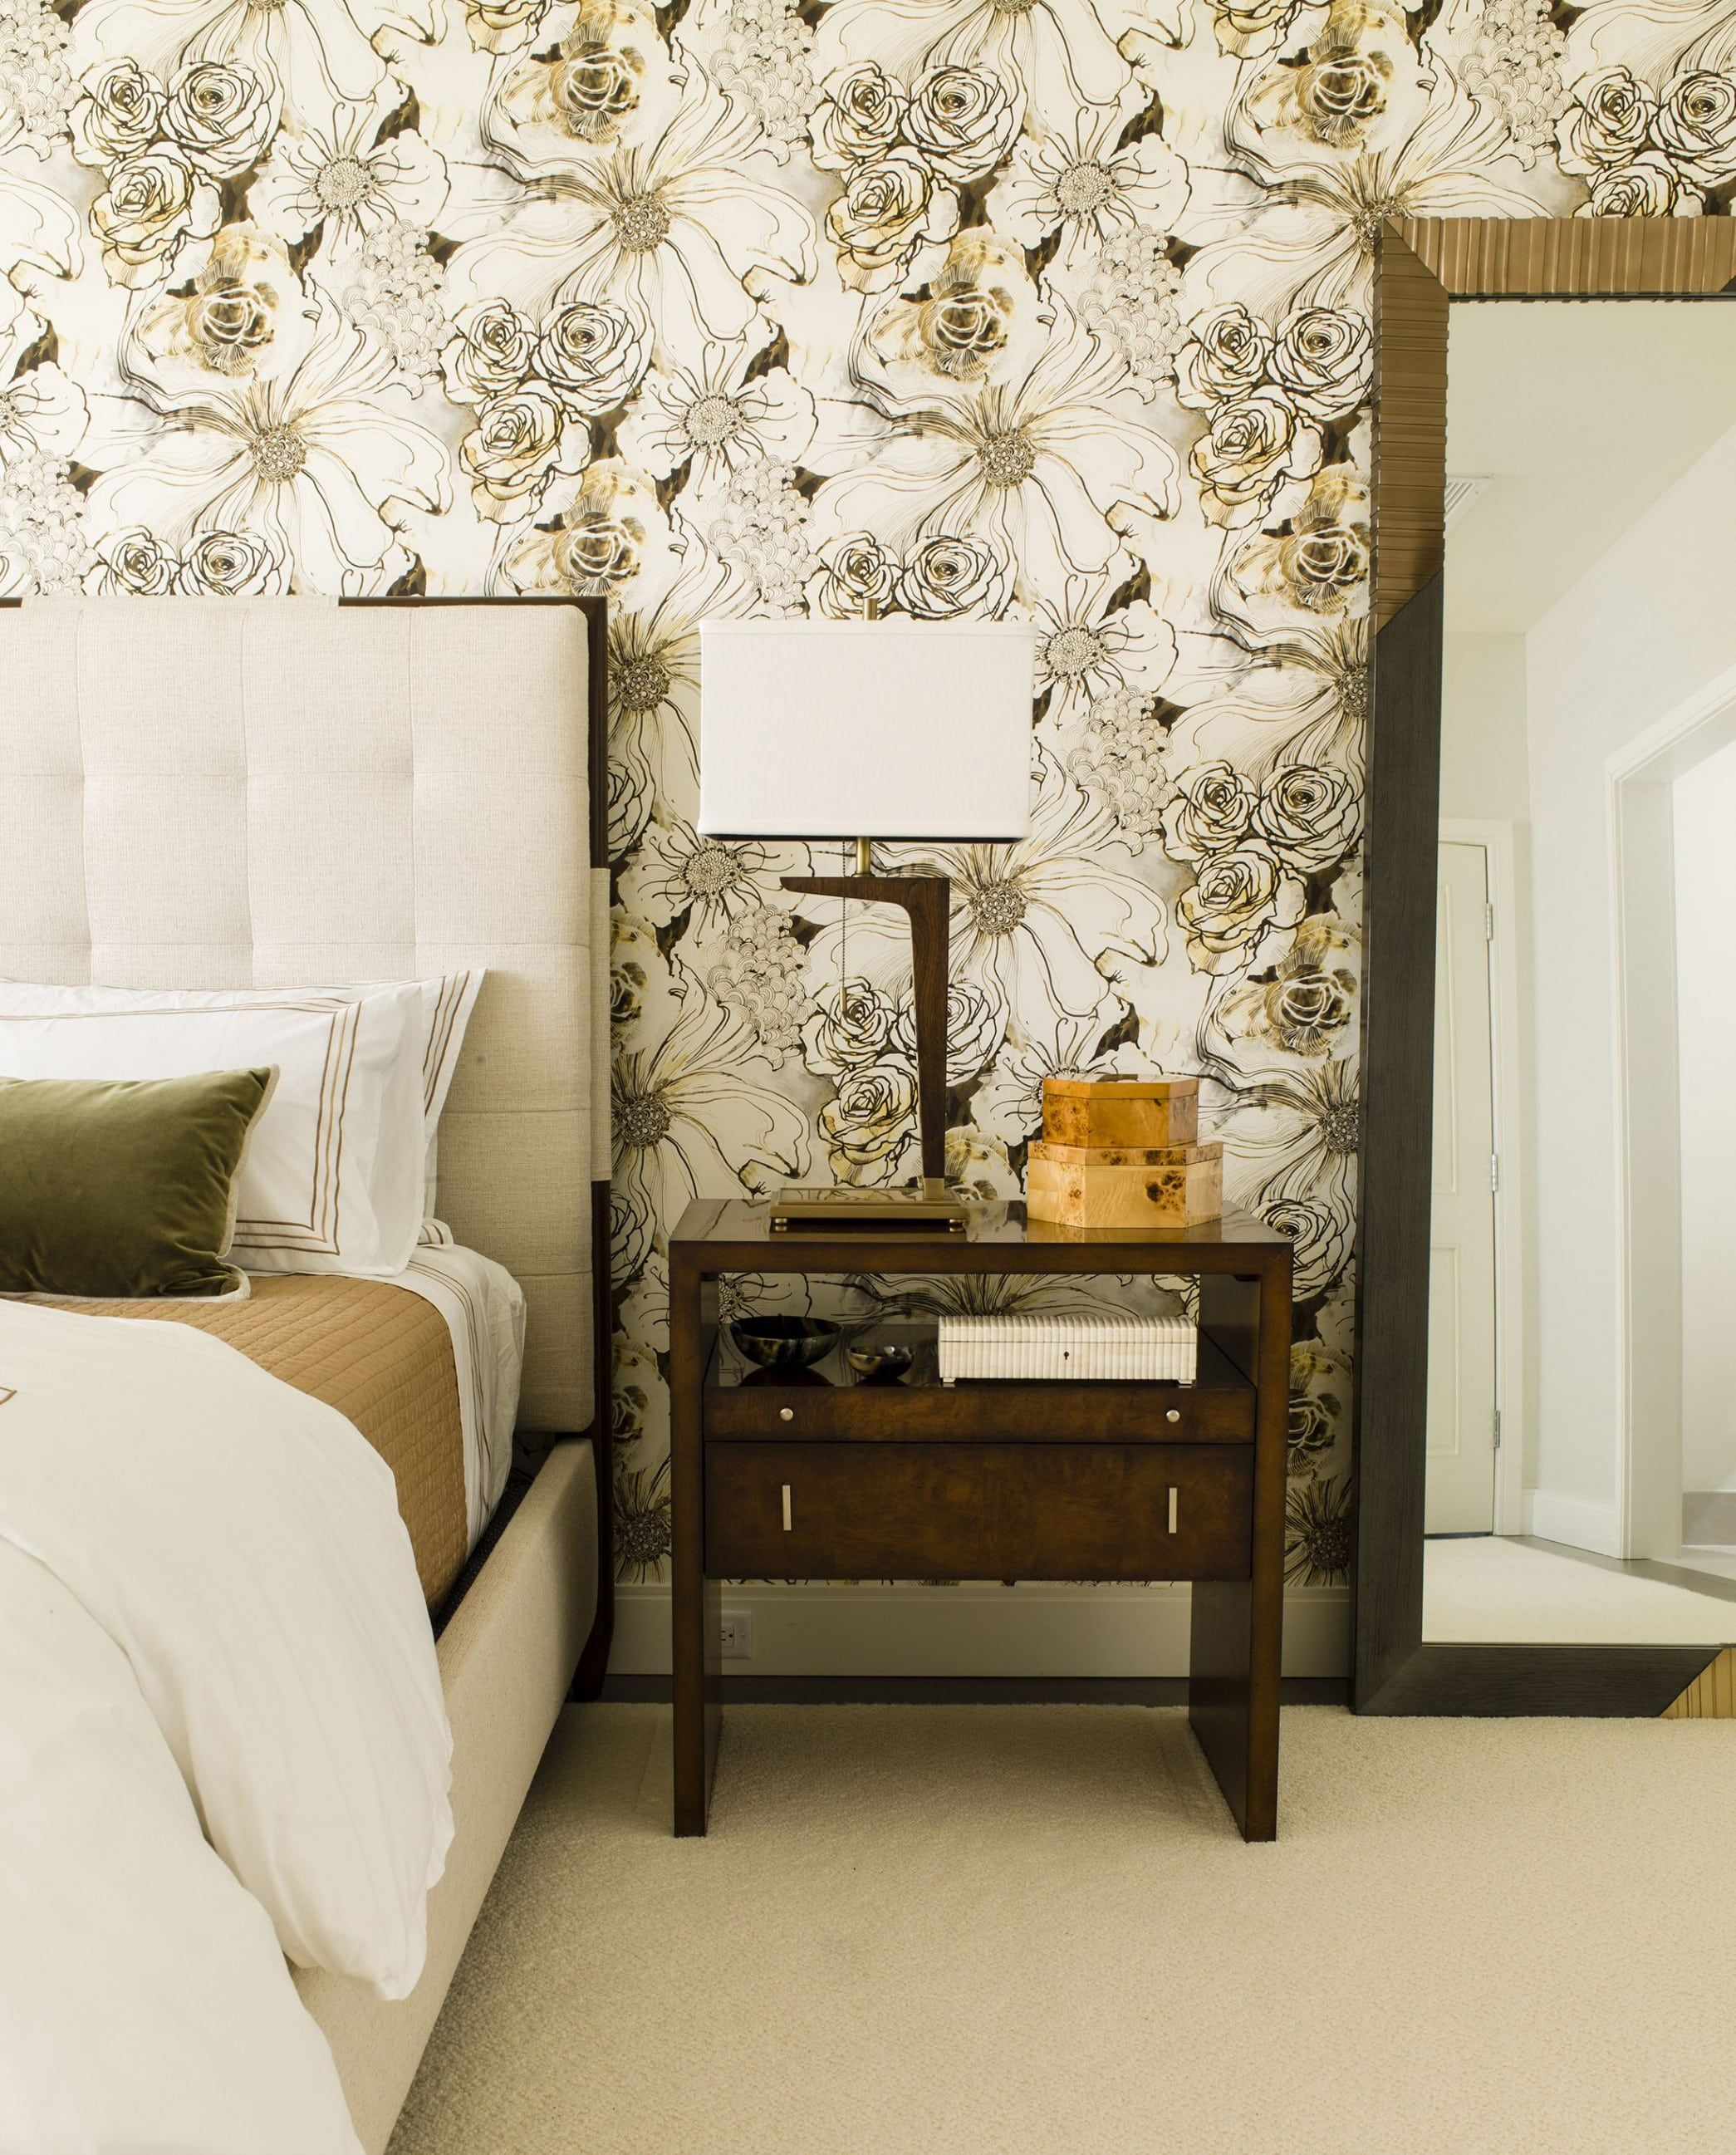 Pin by Lindsey Tovar on B Bedroom in 9  Wallpaper design for